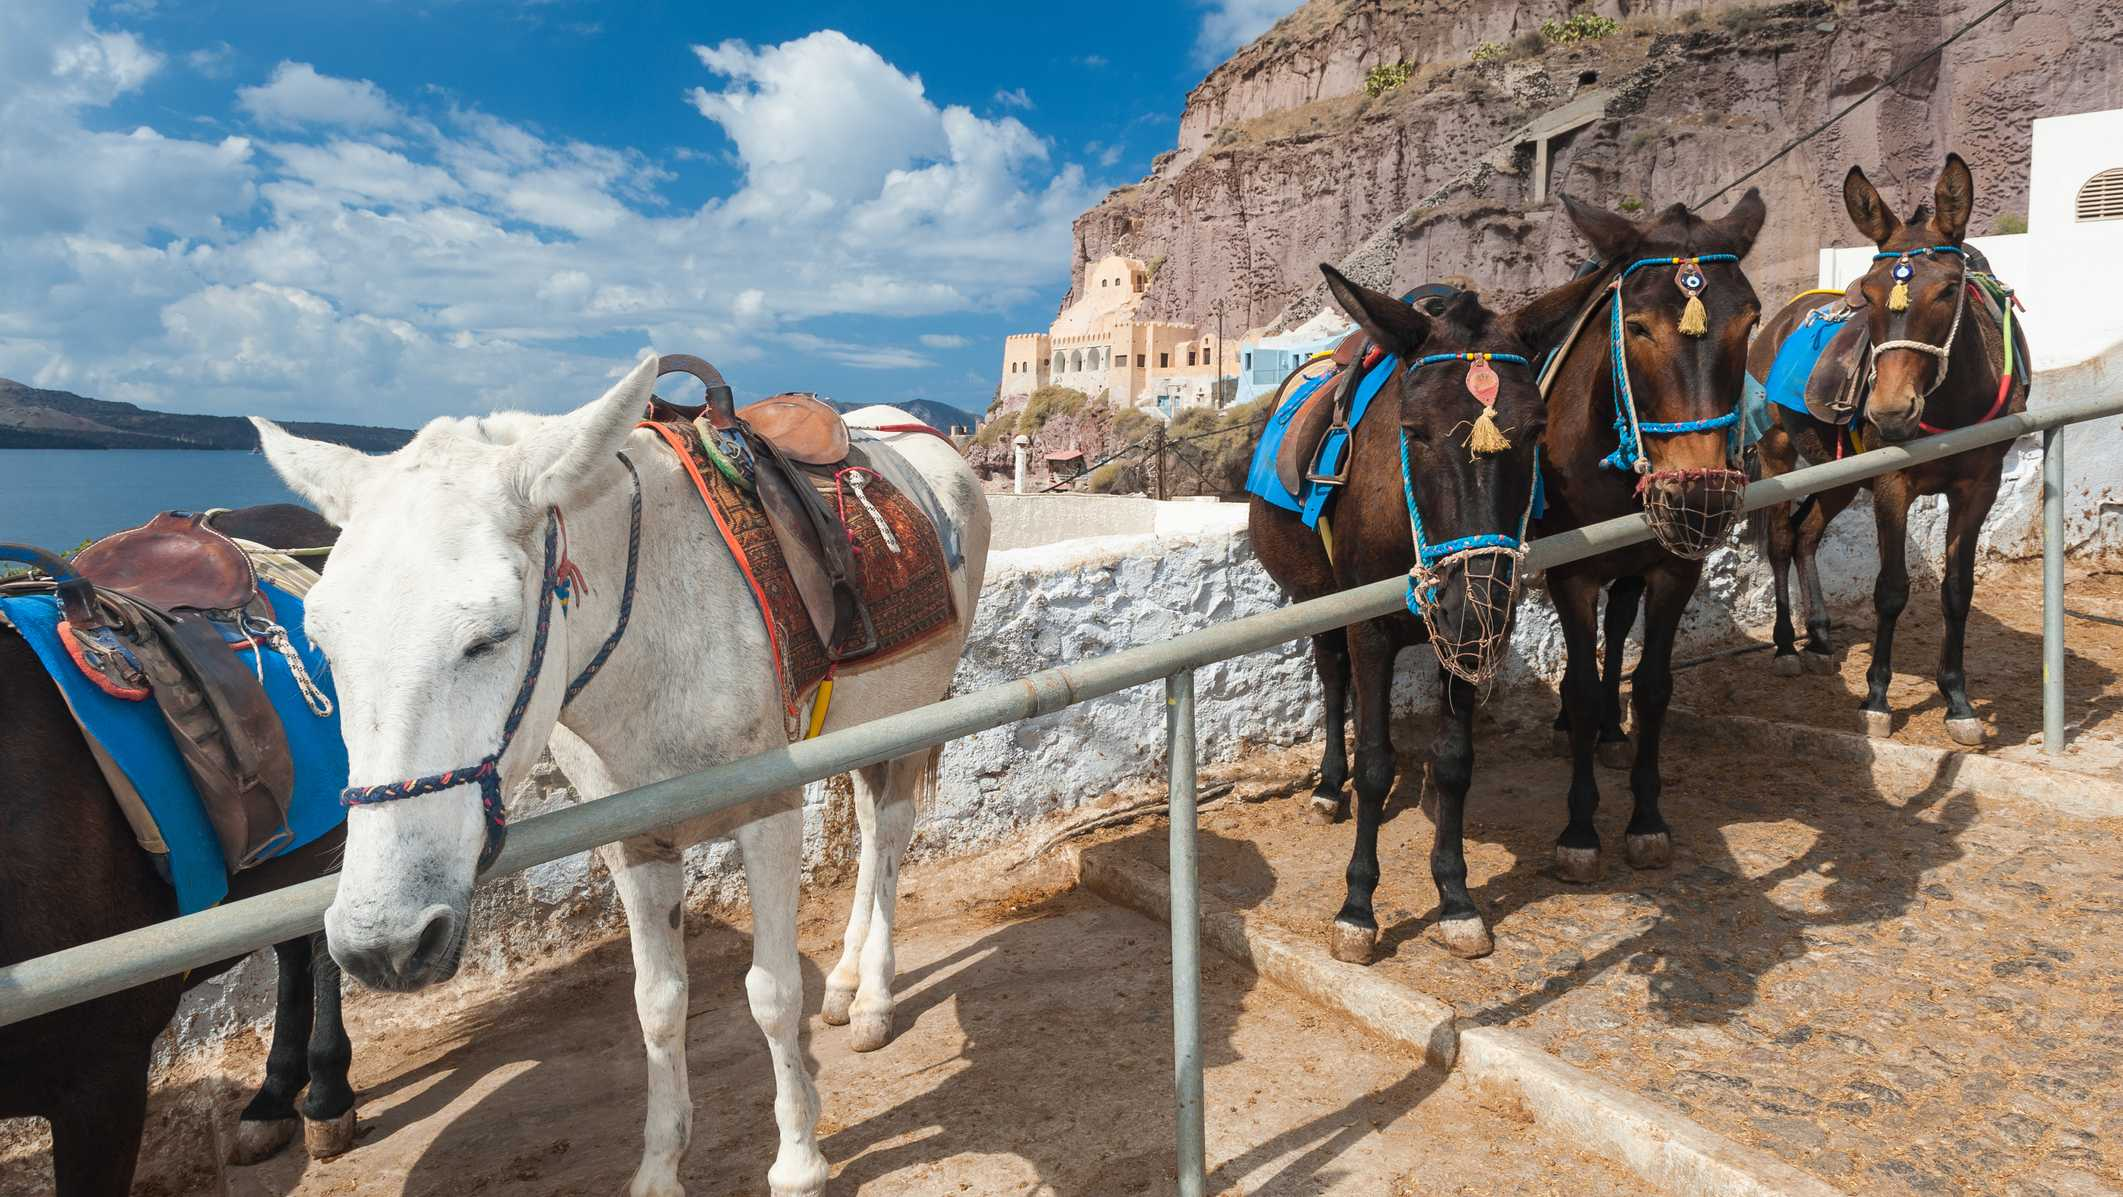 Donkeys are a popular means of transport for tourists on the Greek island of Santorini, especially to be able to climb up and down the Caldera, which is quite steep.